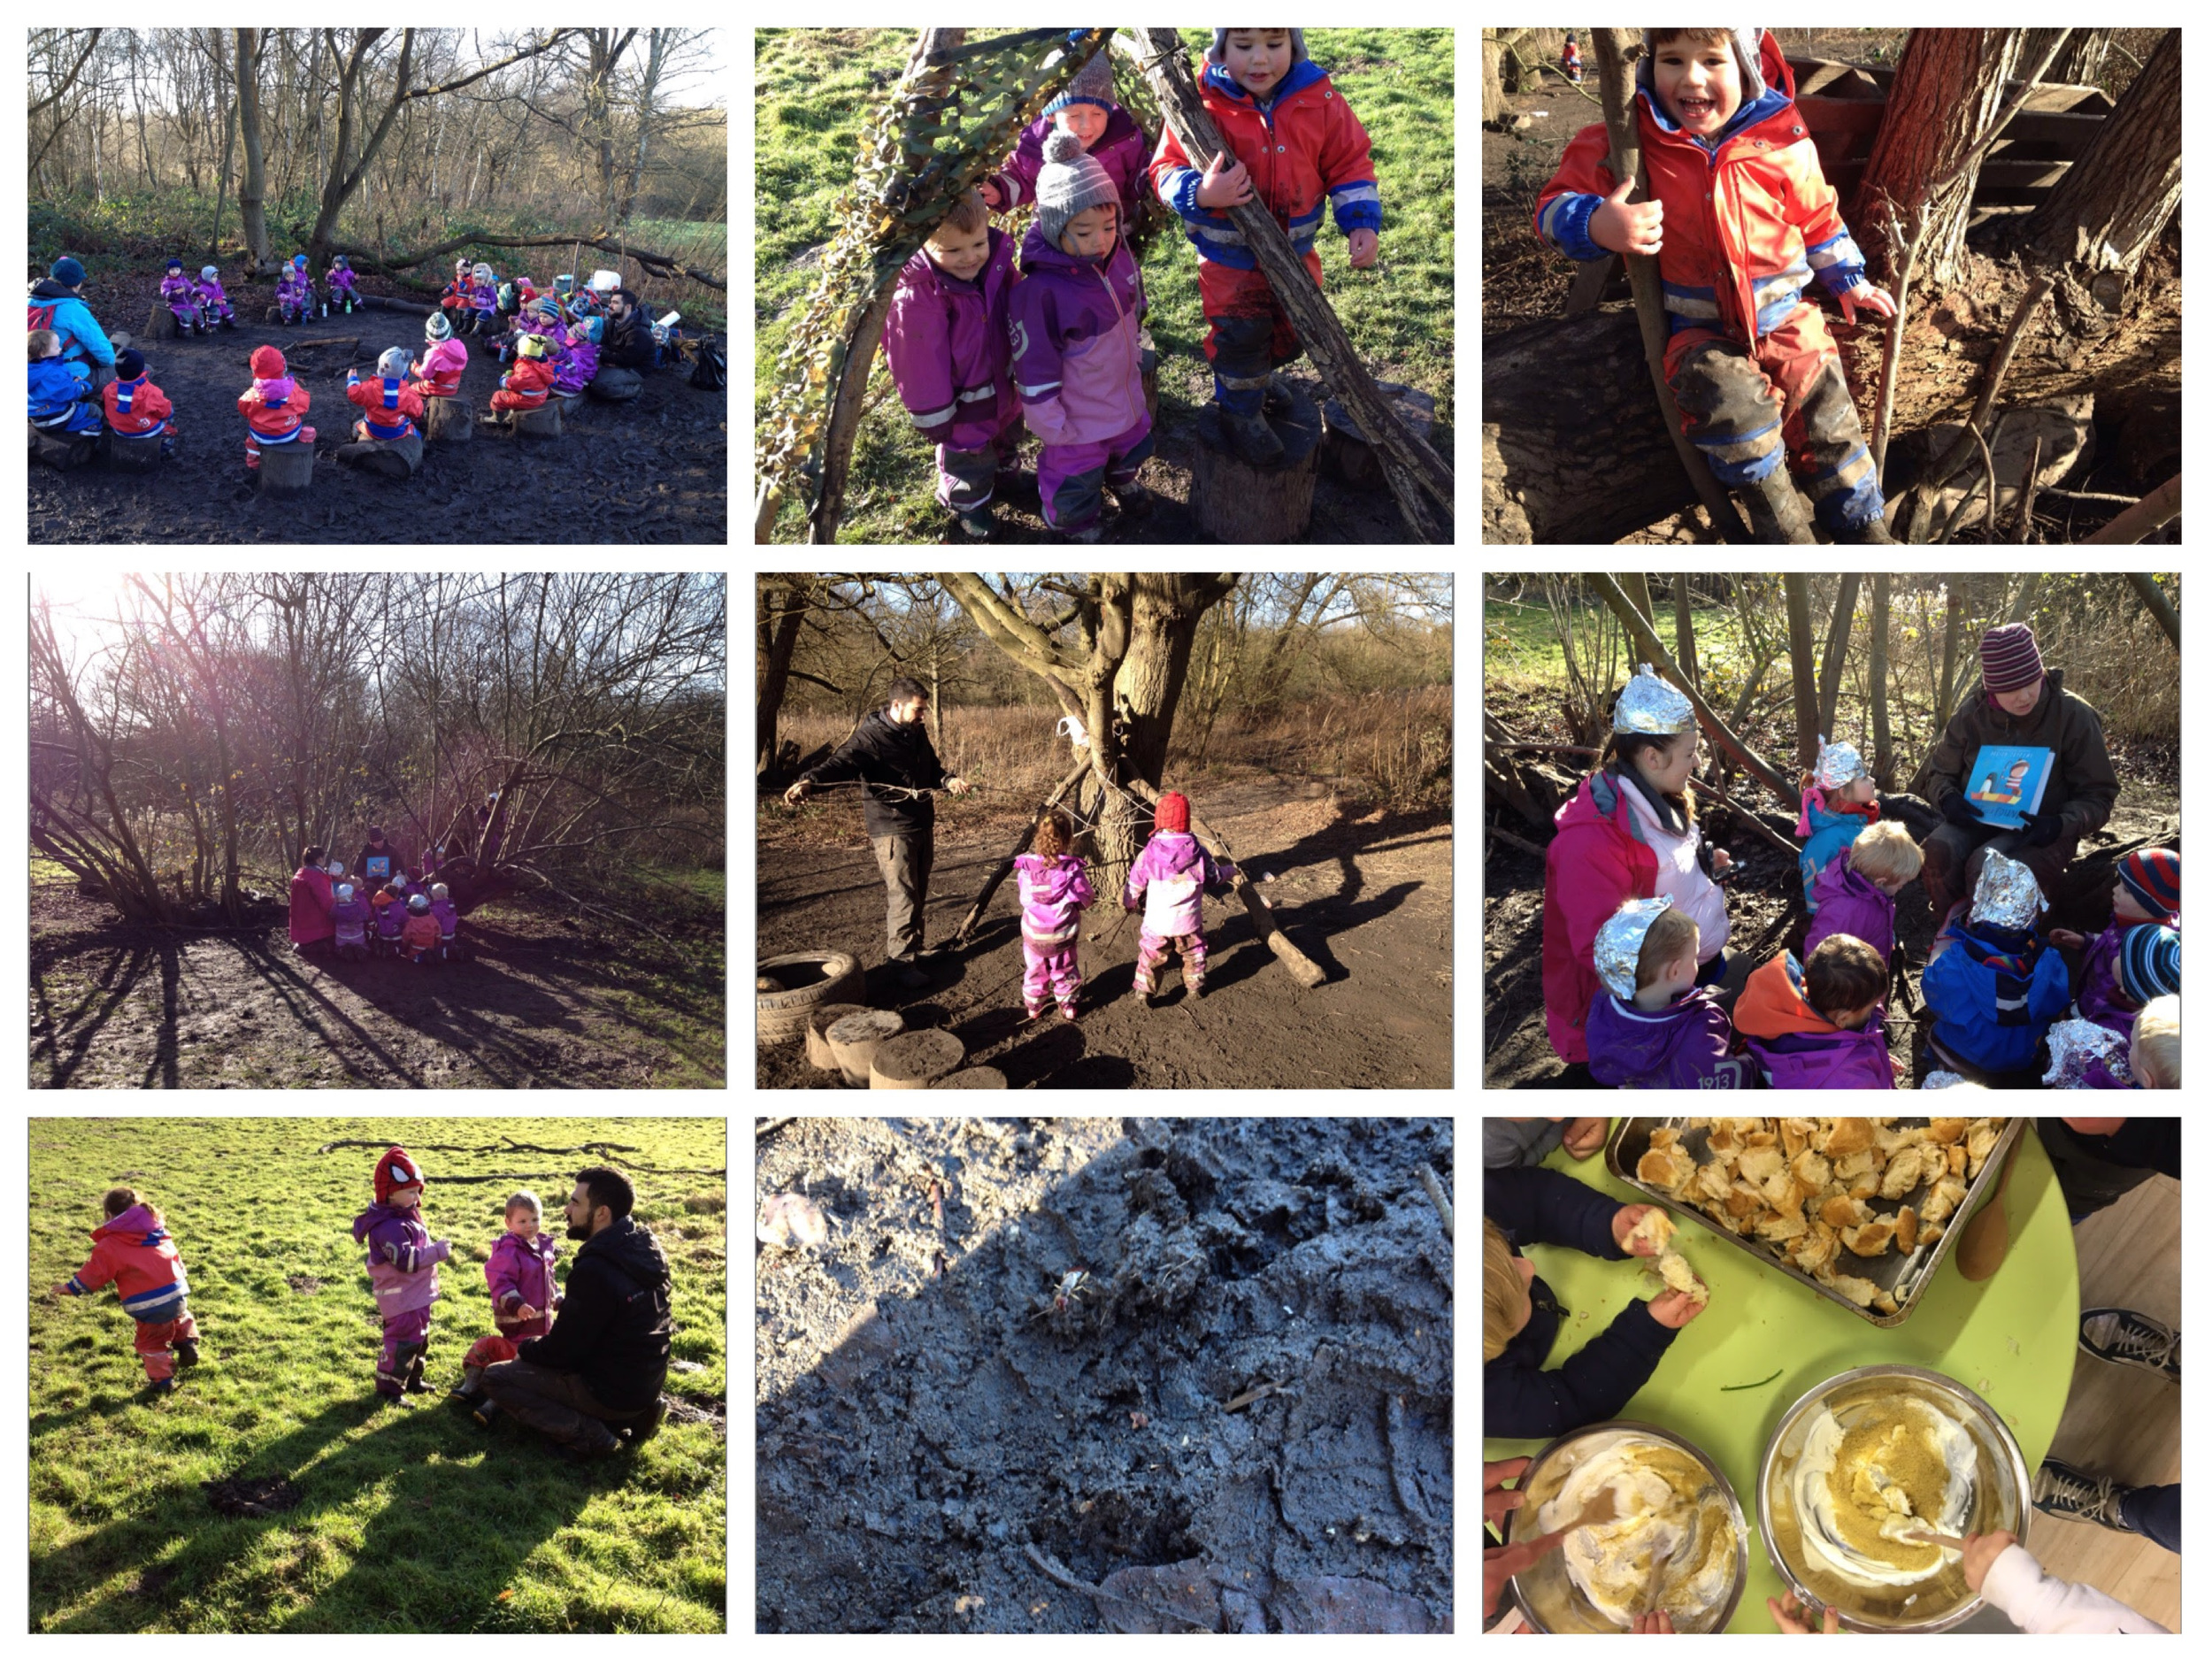 Climbing, running, playing in the forest and cooking